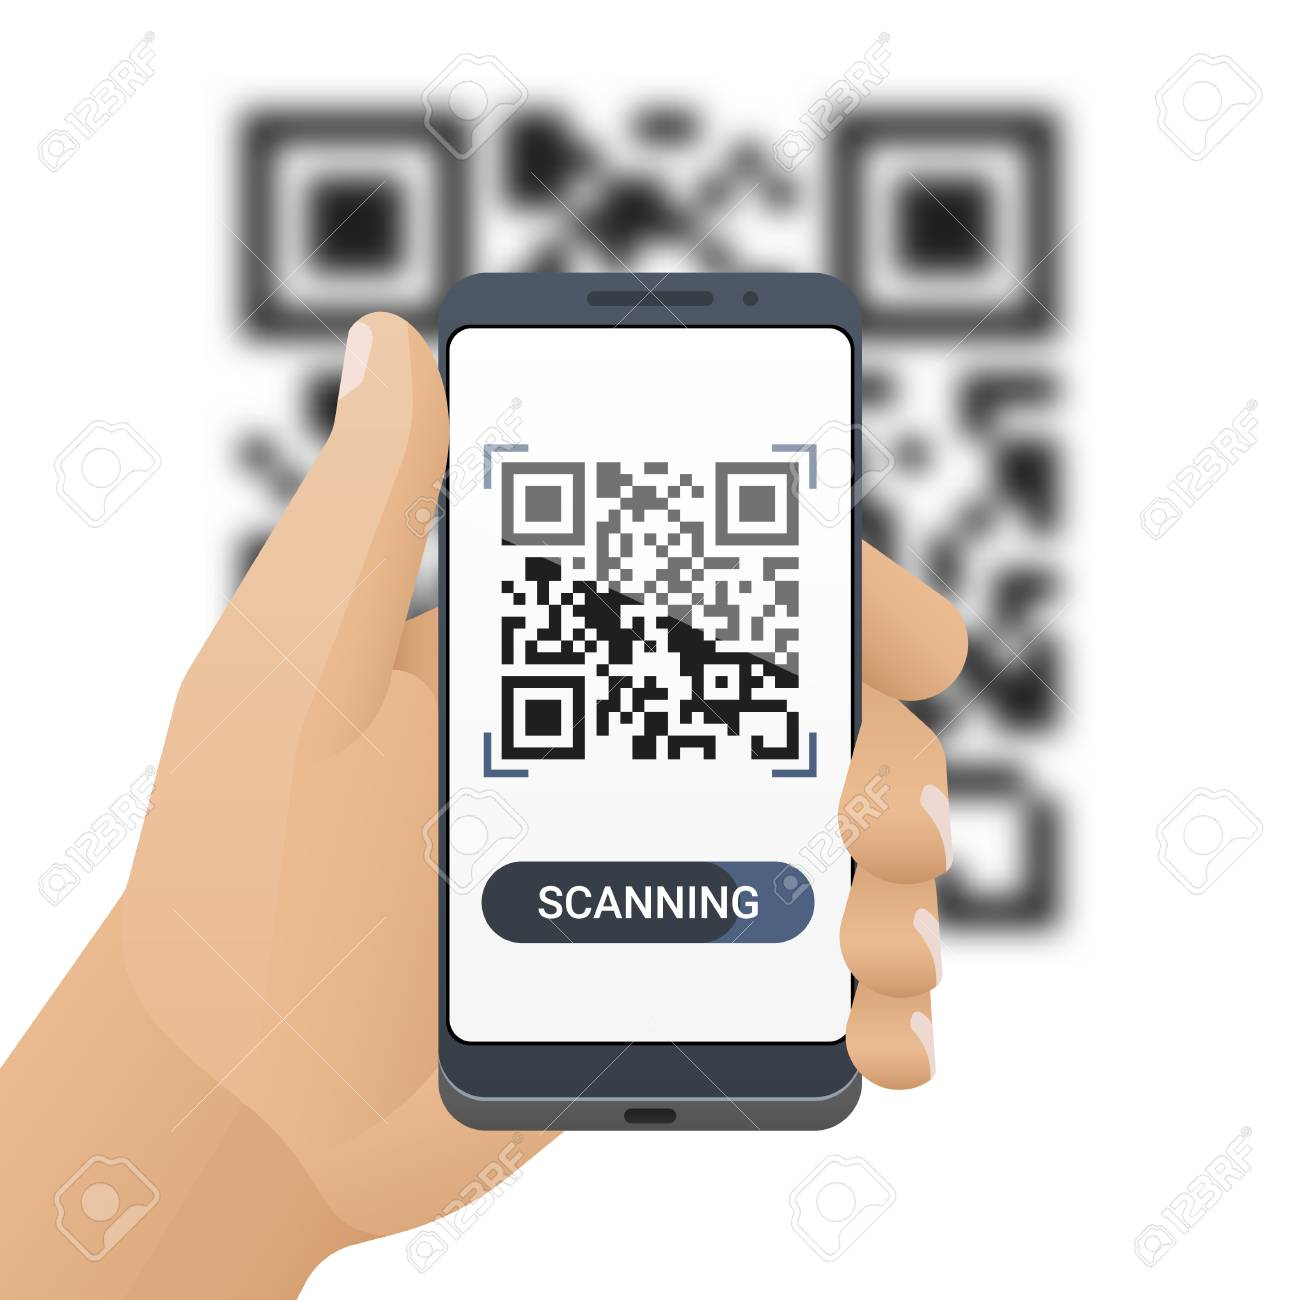 Smartphone in man's hand scans QR code  Barcode scanner application